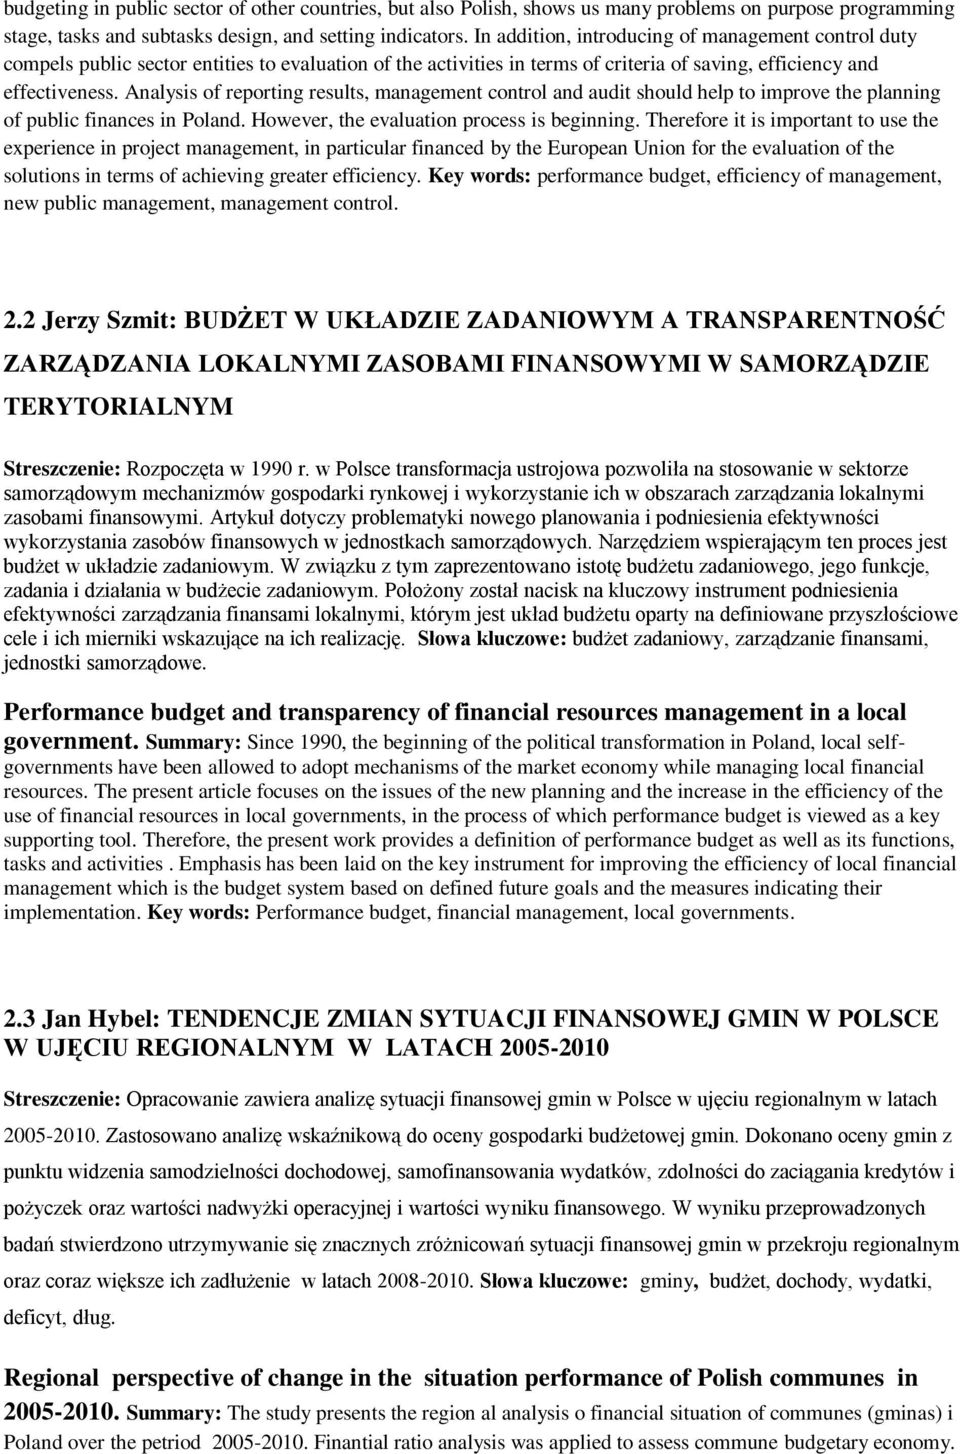 Analysis of reporting results, management control and audit should help to improve the planning of public finances in Poland. However, the evaluation process is beginning.